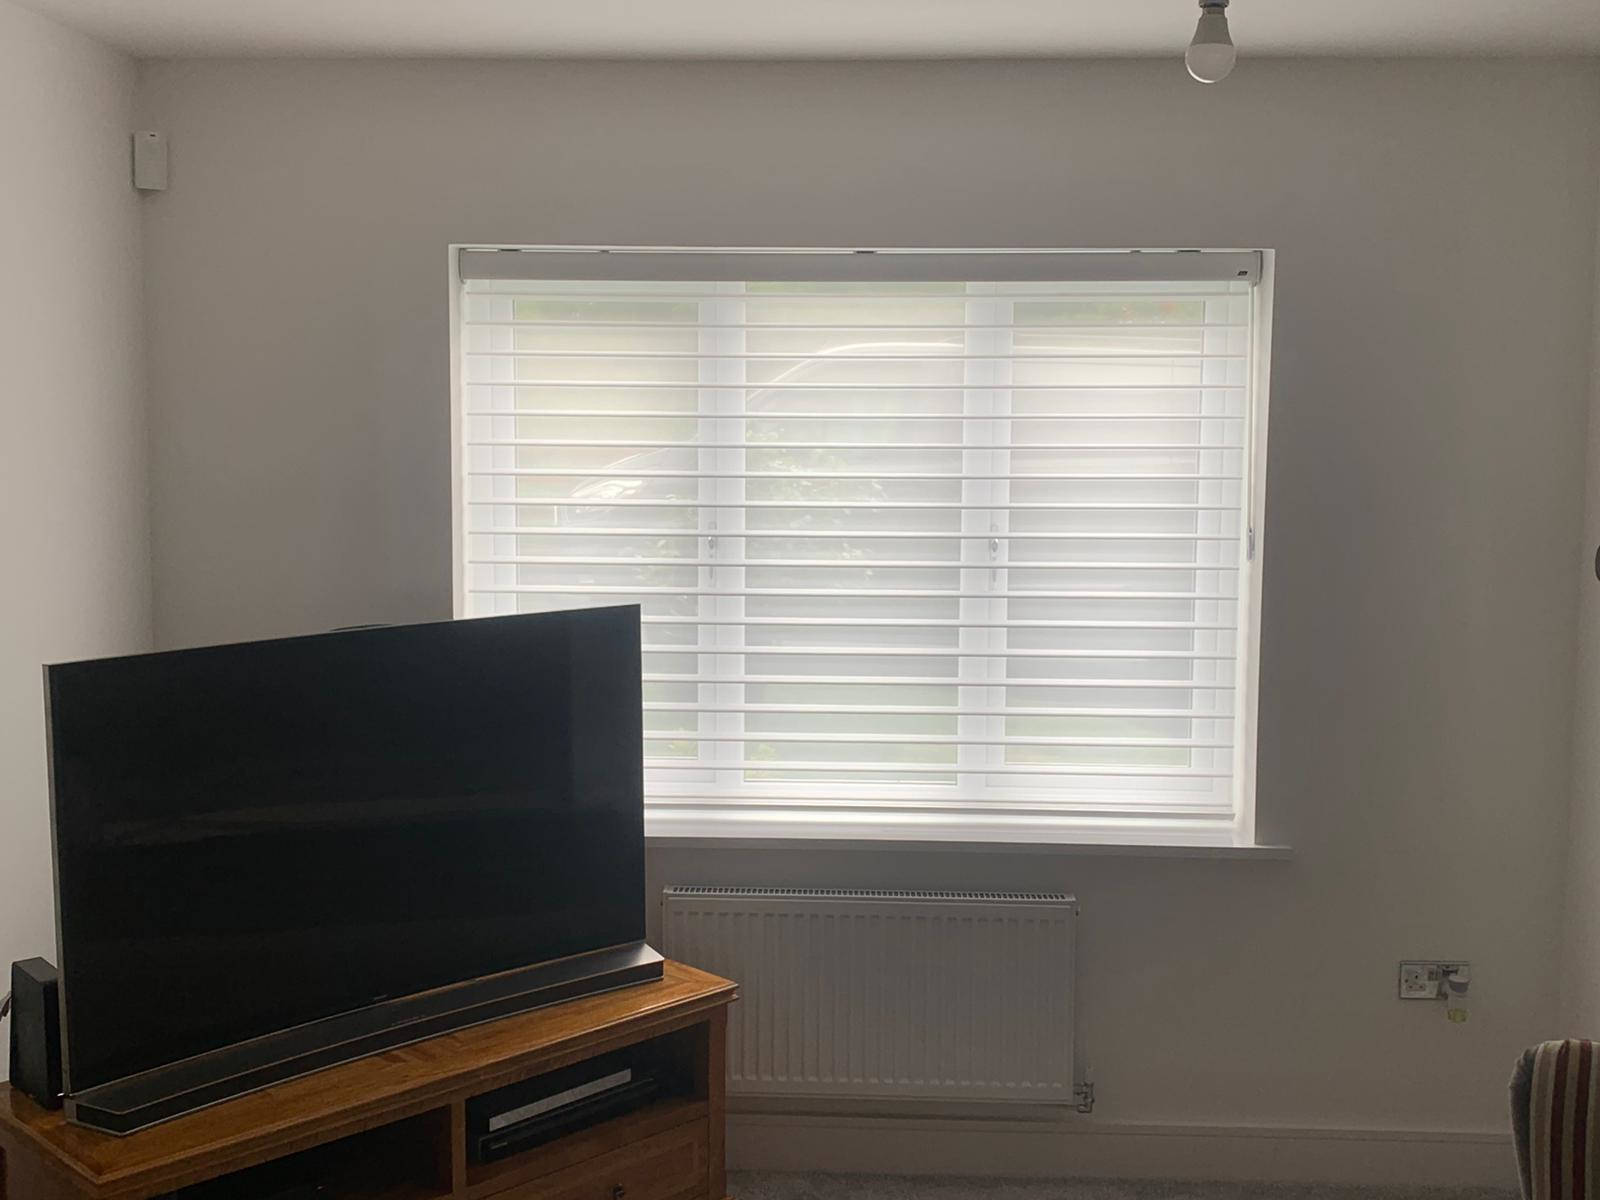 lounge with tv in corner and white window blind